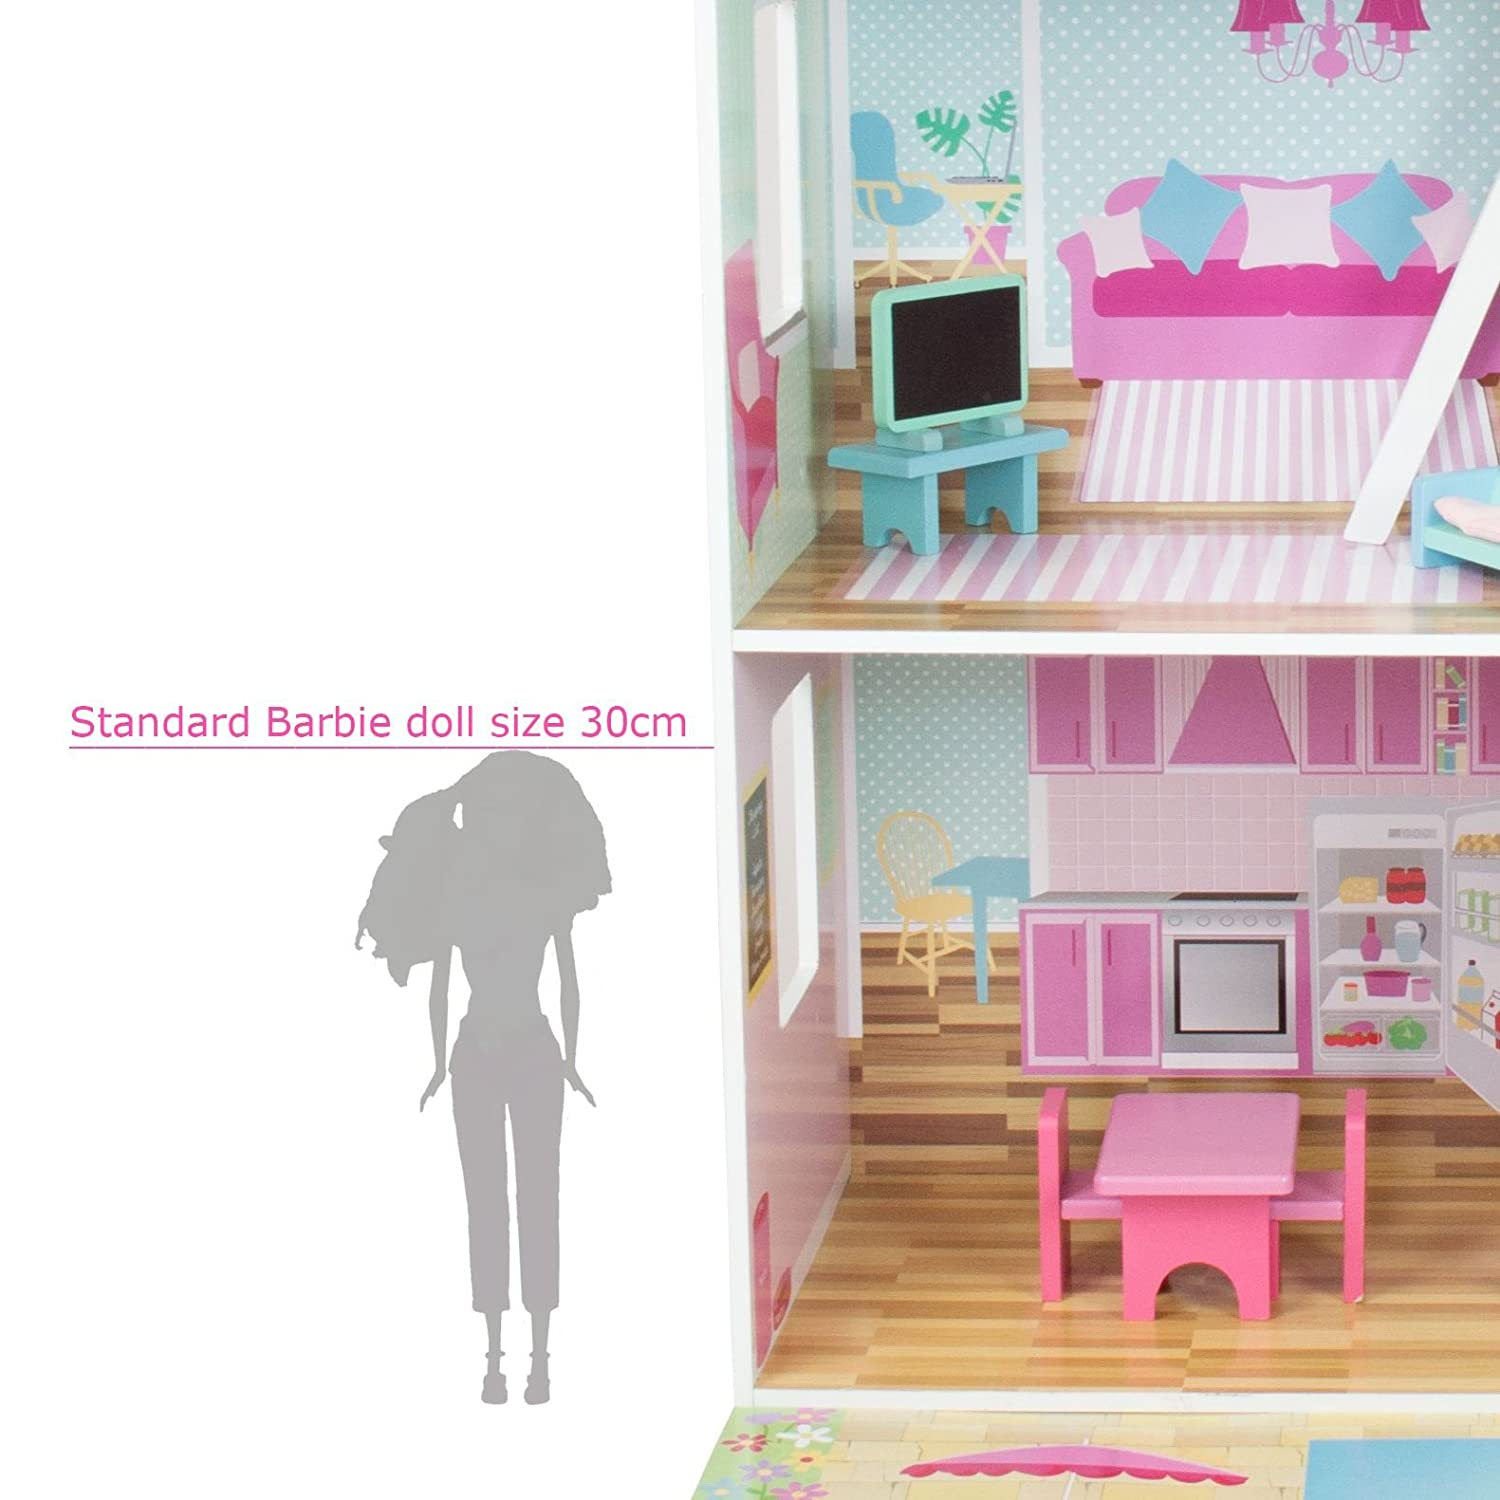 Barbie doll house furniture - Boppi Wooden Dolls House With 15 Furniture Play Accessories Amazon Co Uk Toys Games